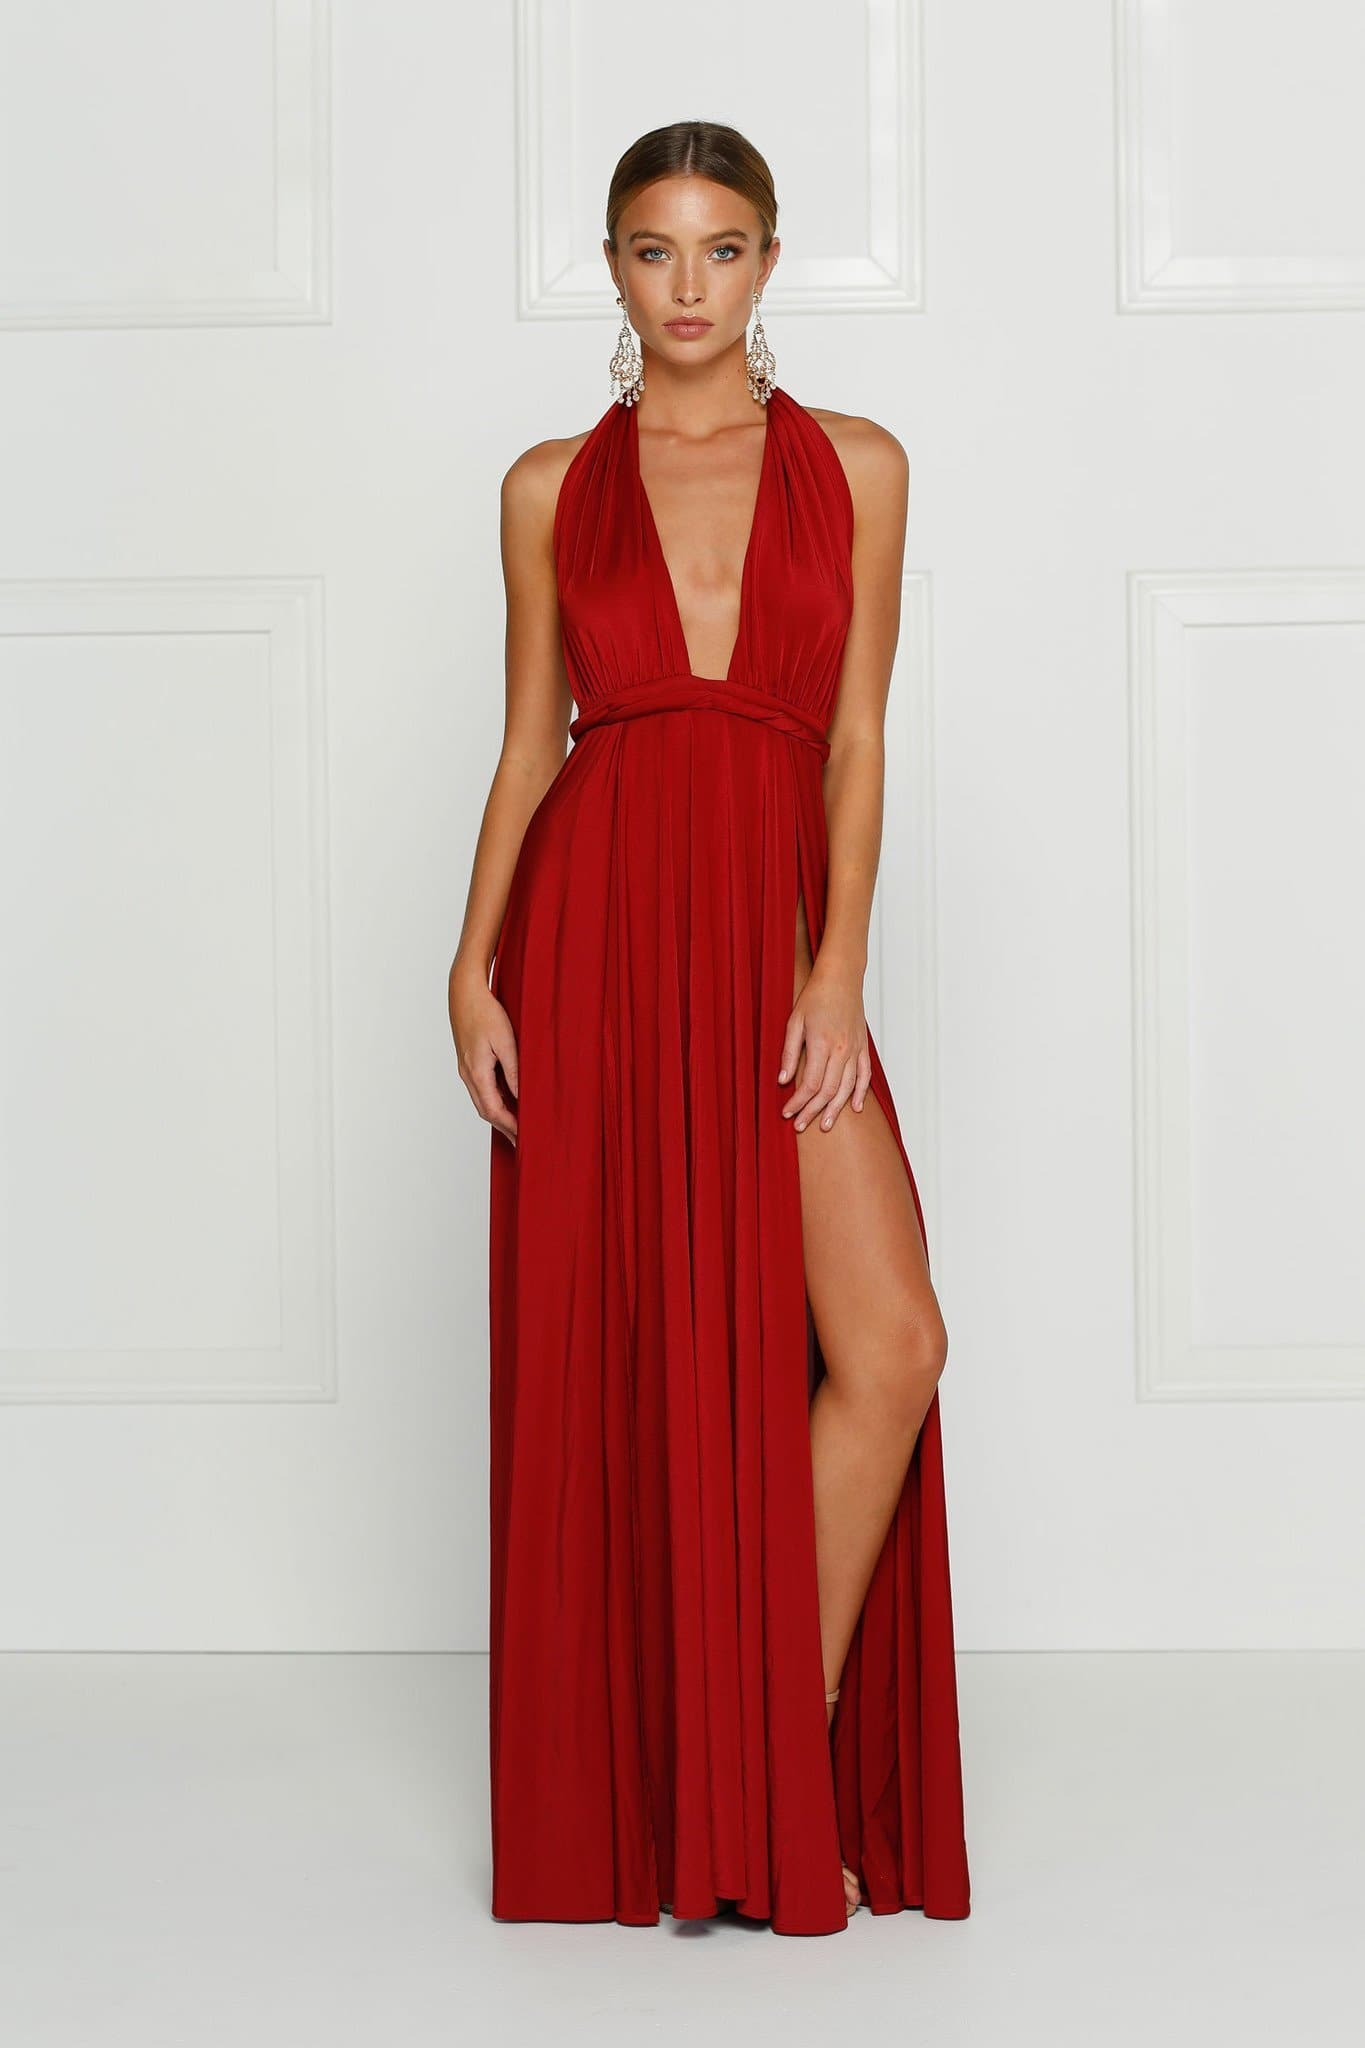 Catalina - Wine Red Jersey Gown | Low Back, Side Slits & Plunge Neck